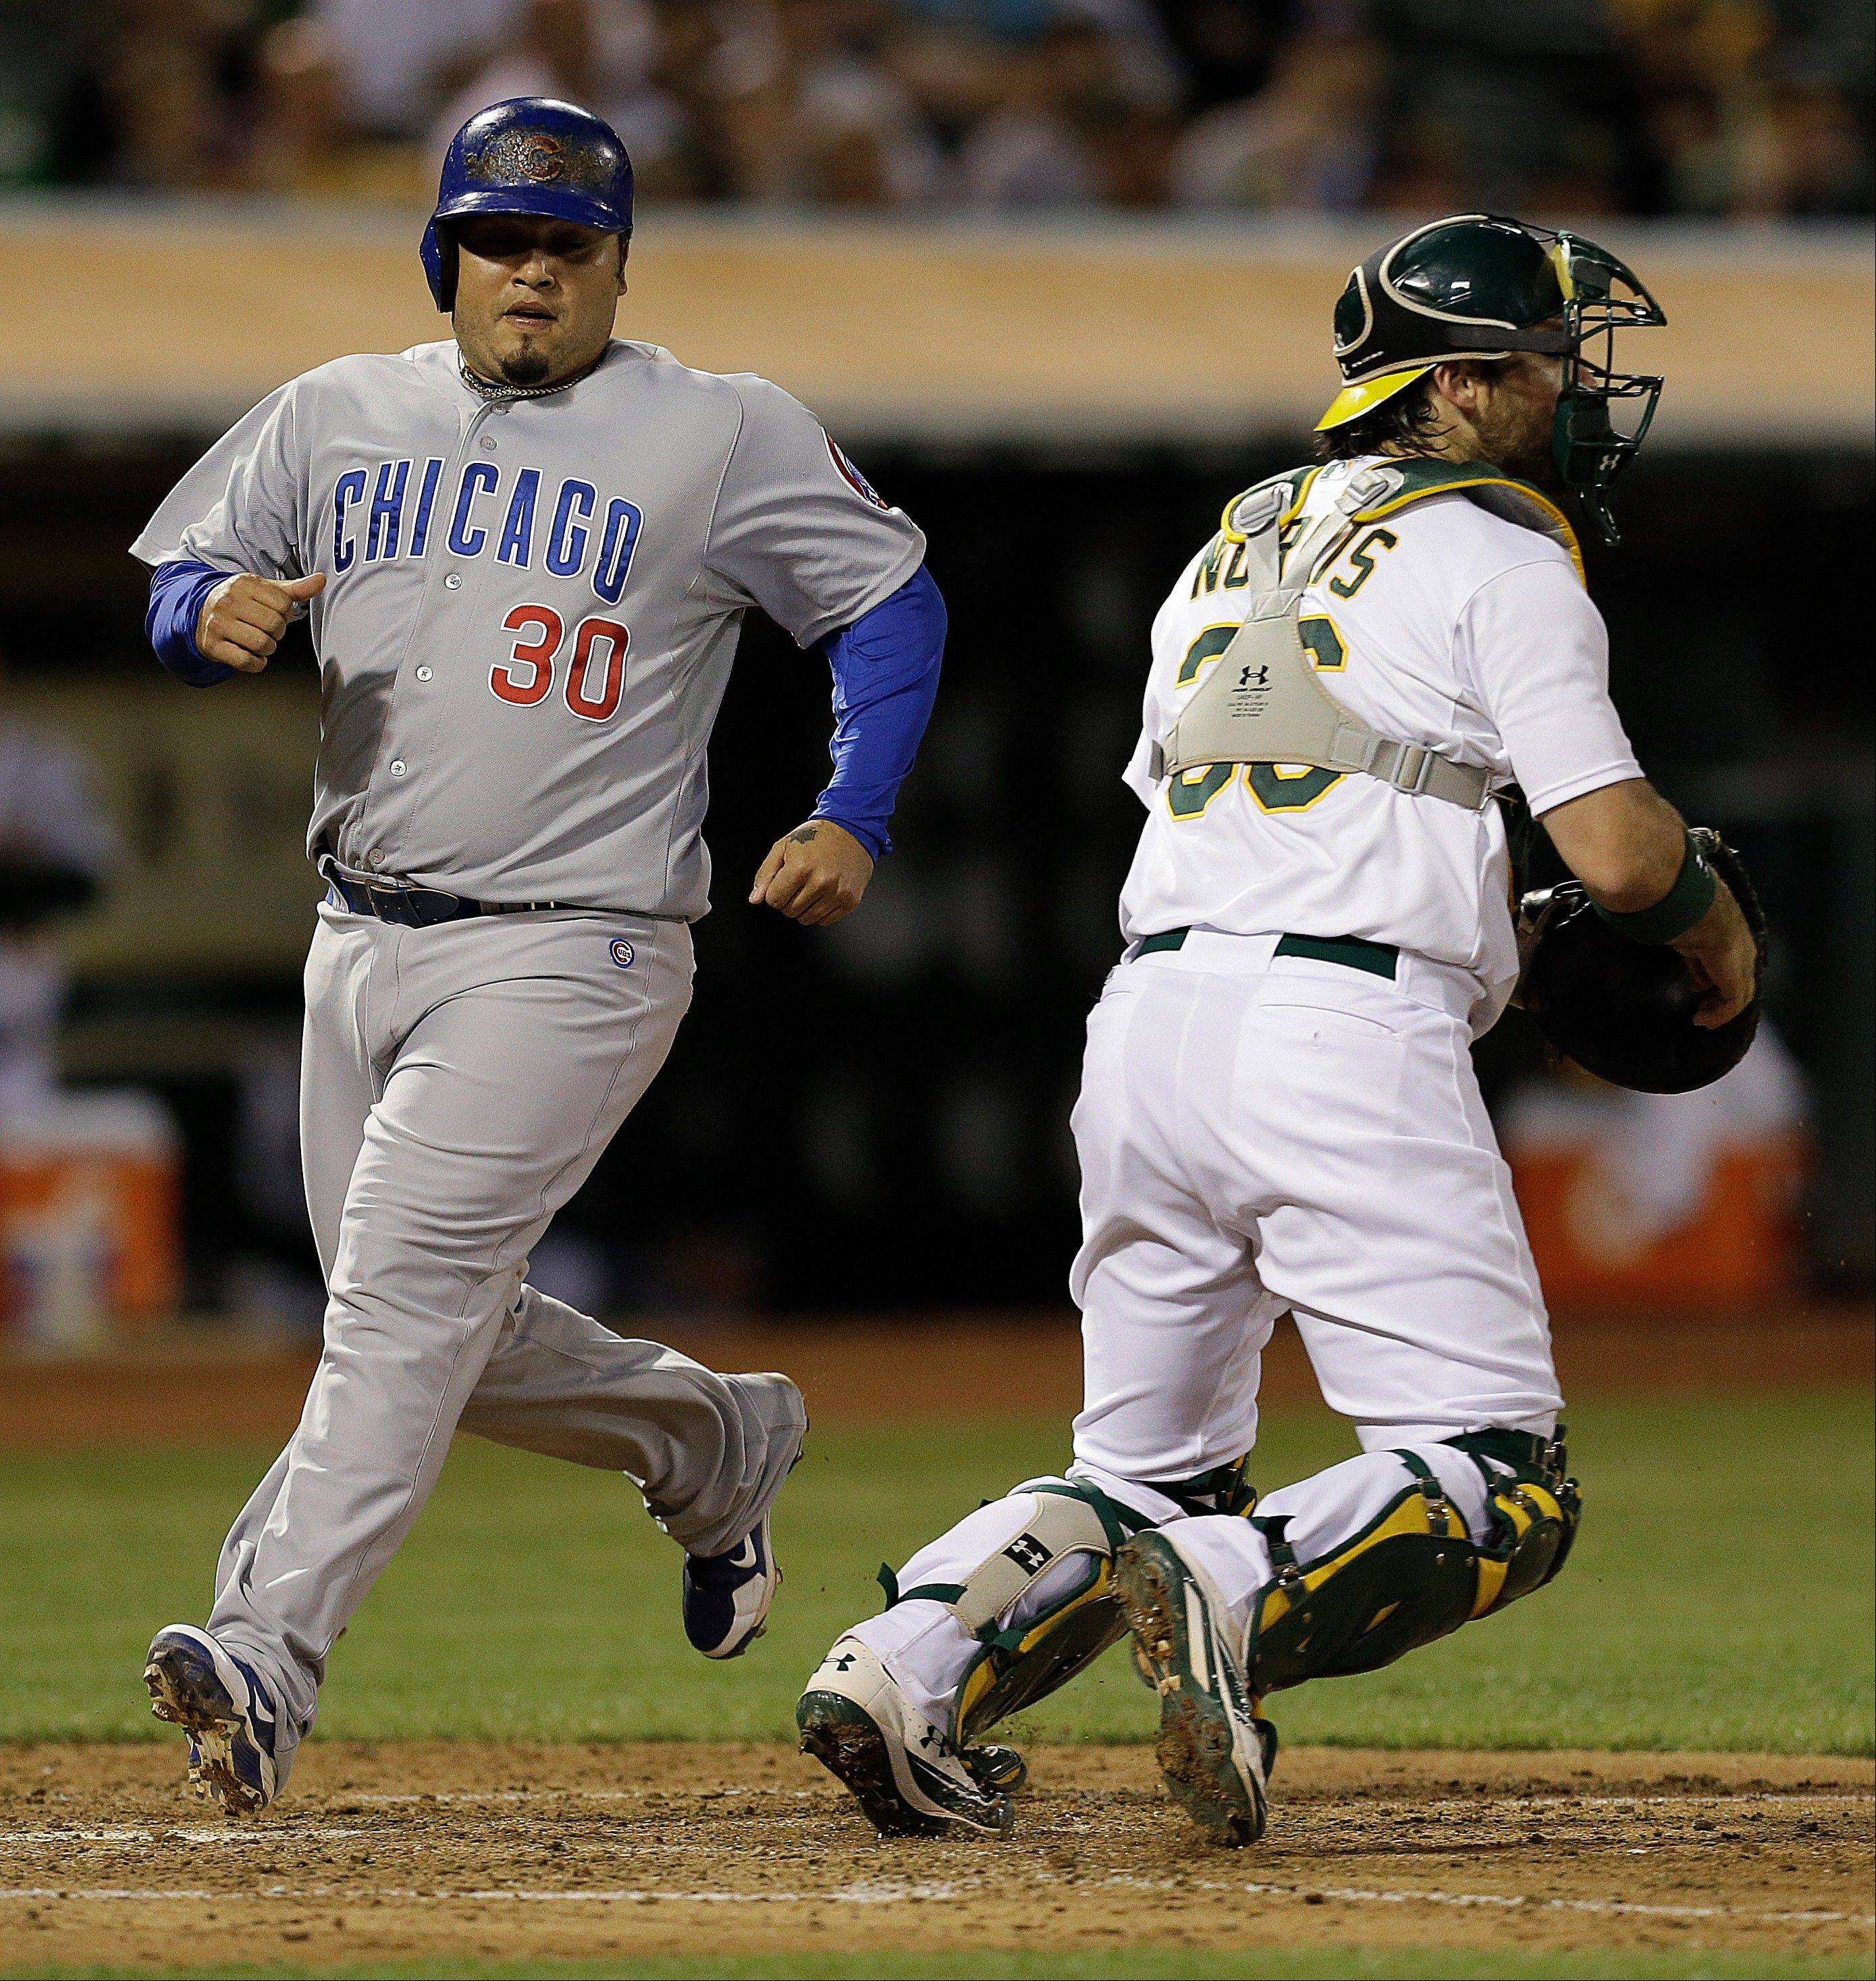 The Cubs' Dioner Navarro scores past Athletics catcher Derek Norris in the sixth inning Tuesday in Oakland.